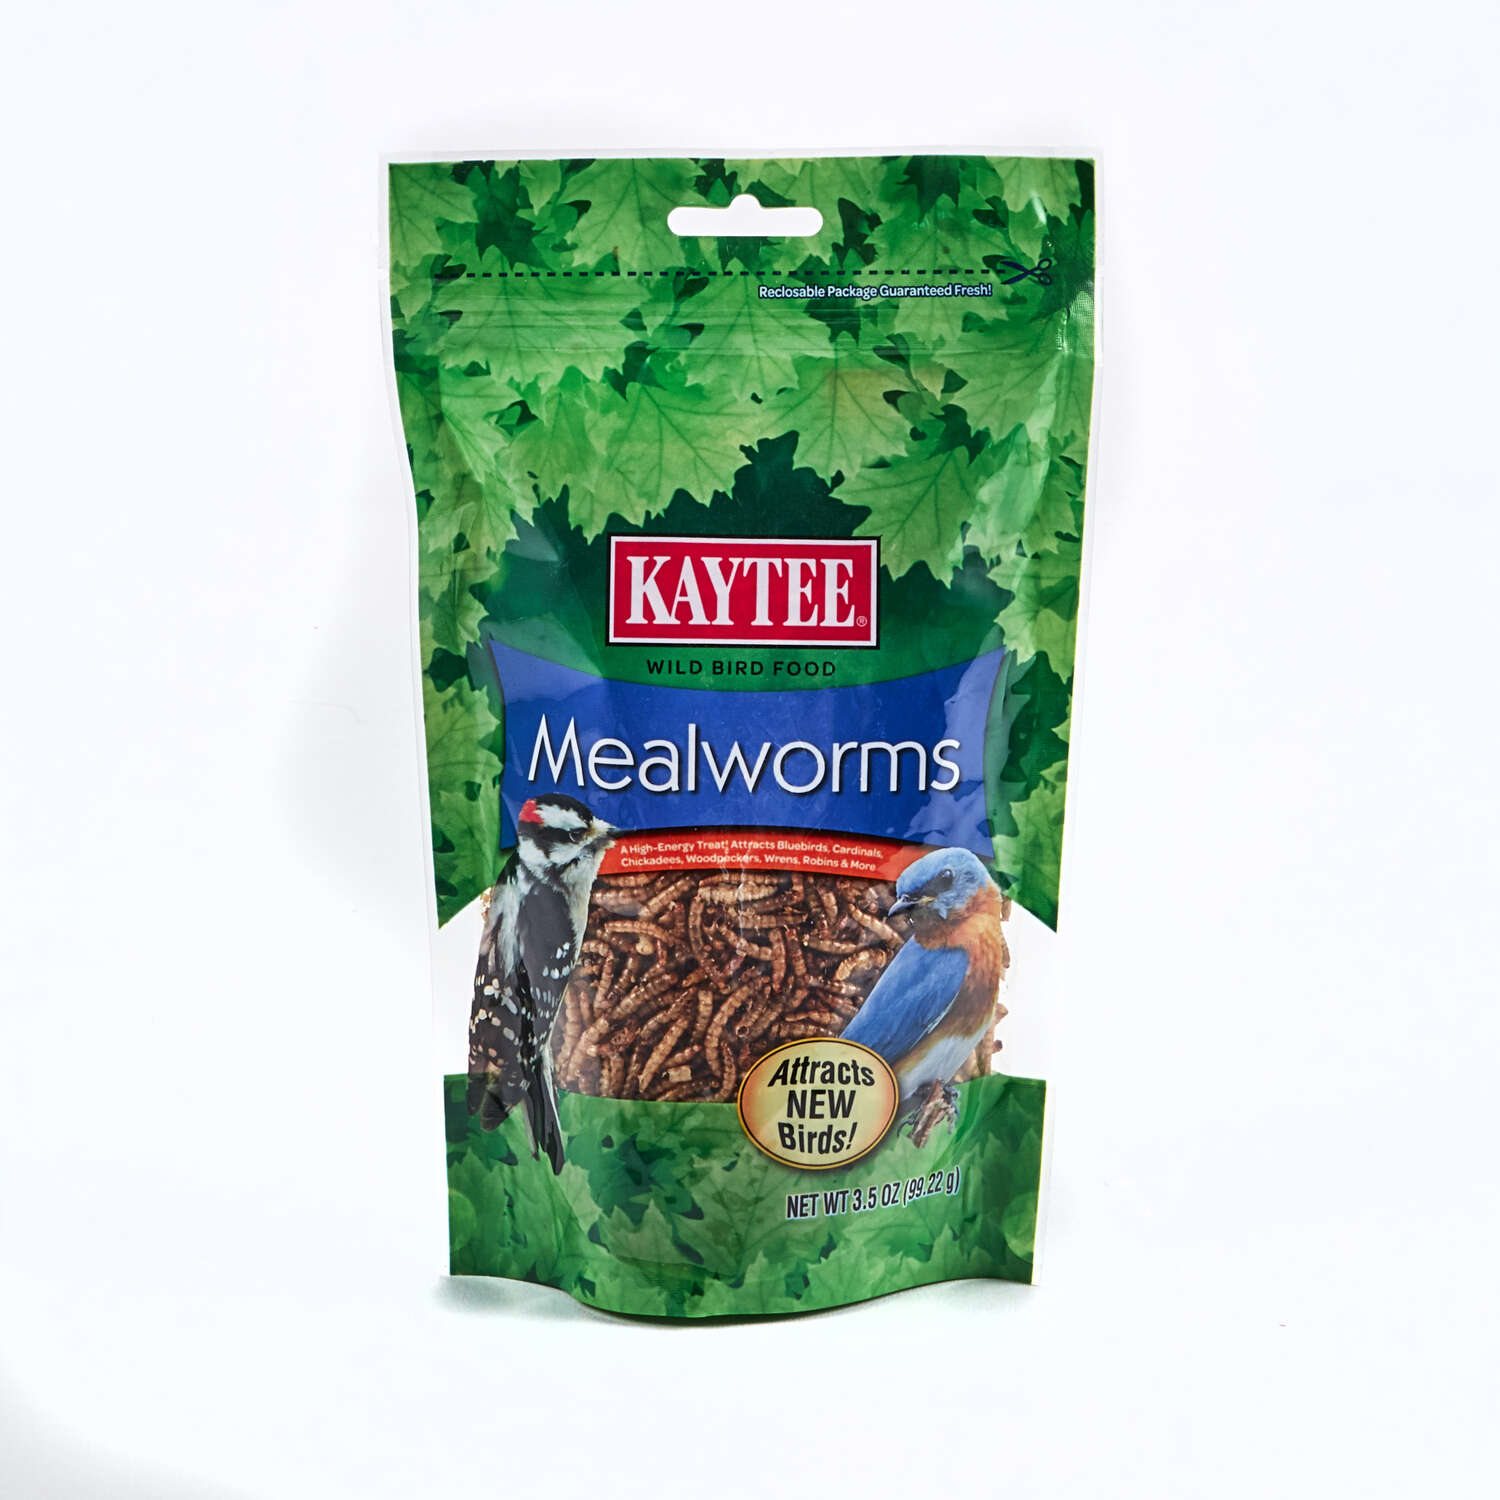 Kaytee  Mealworms  Robin  Mealworms  Dried Mealworm  3.5 oz.